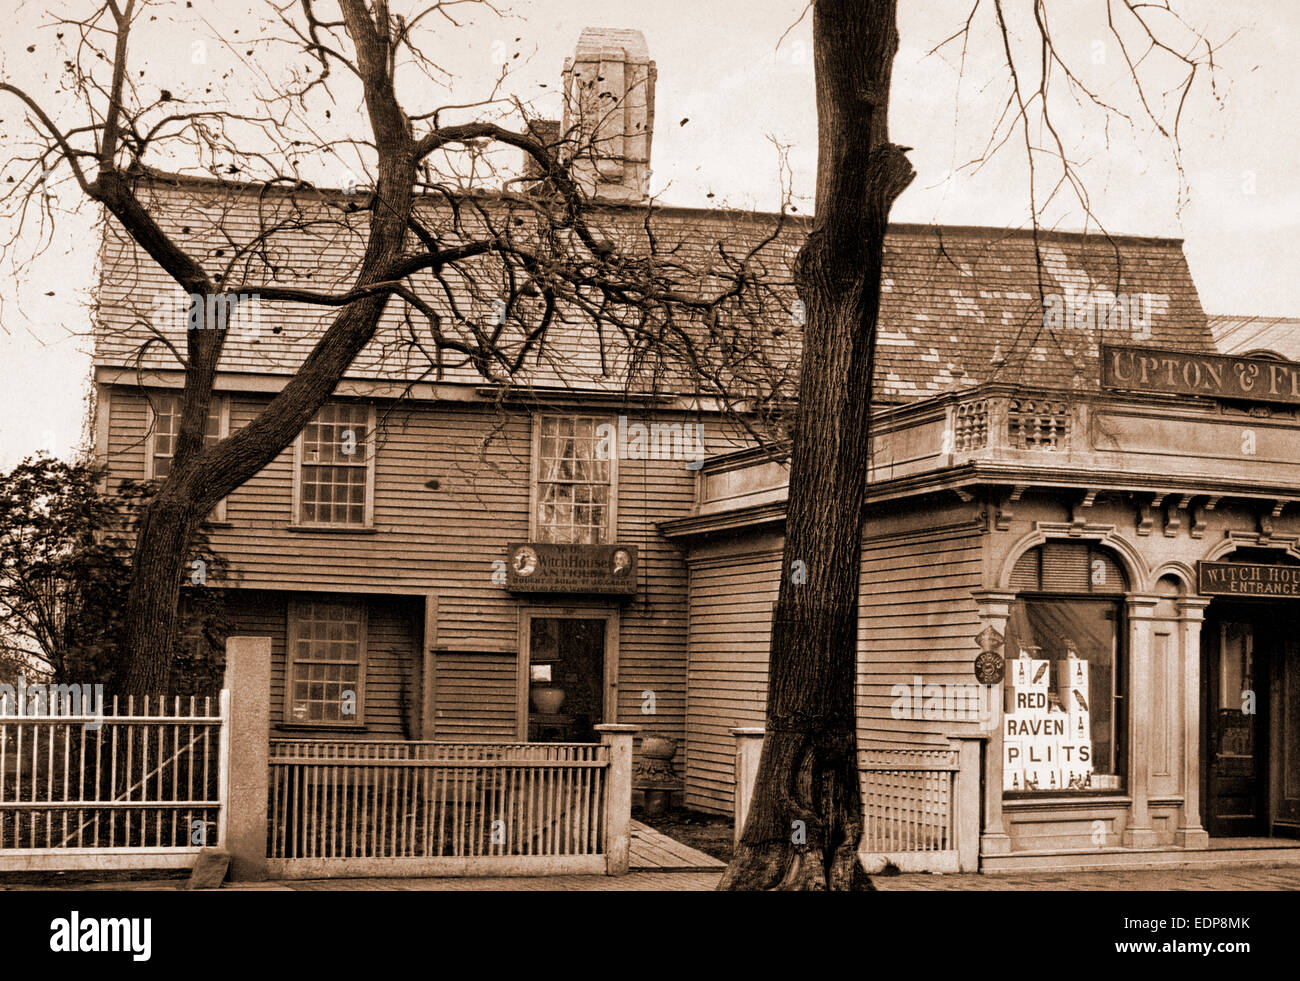 The Witch House, Salem, Antique stores, Dwellings, United States, Massachusetts, Salem, 1901 - Stock Image